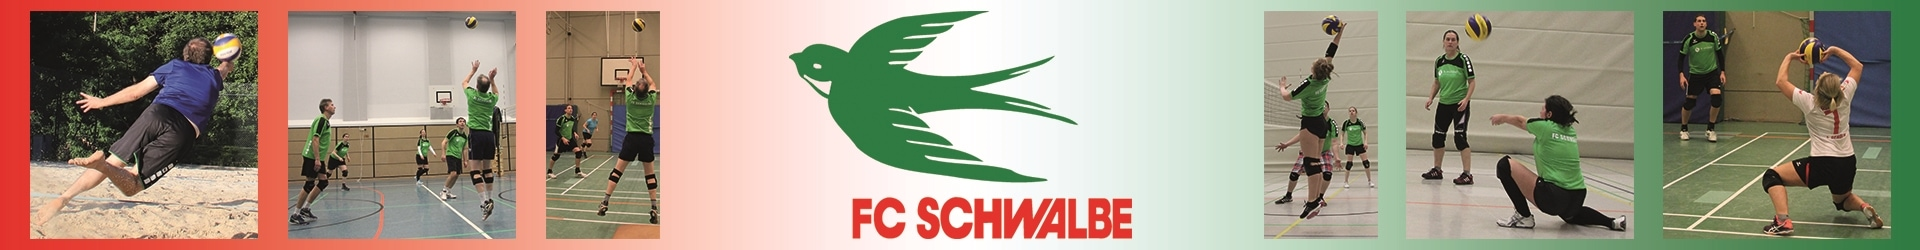 Volleyball FC Schwalbe Hannover